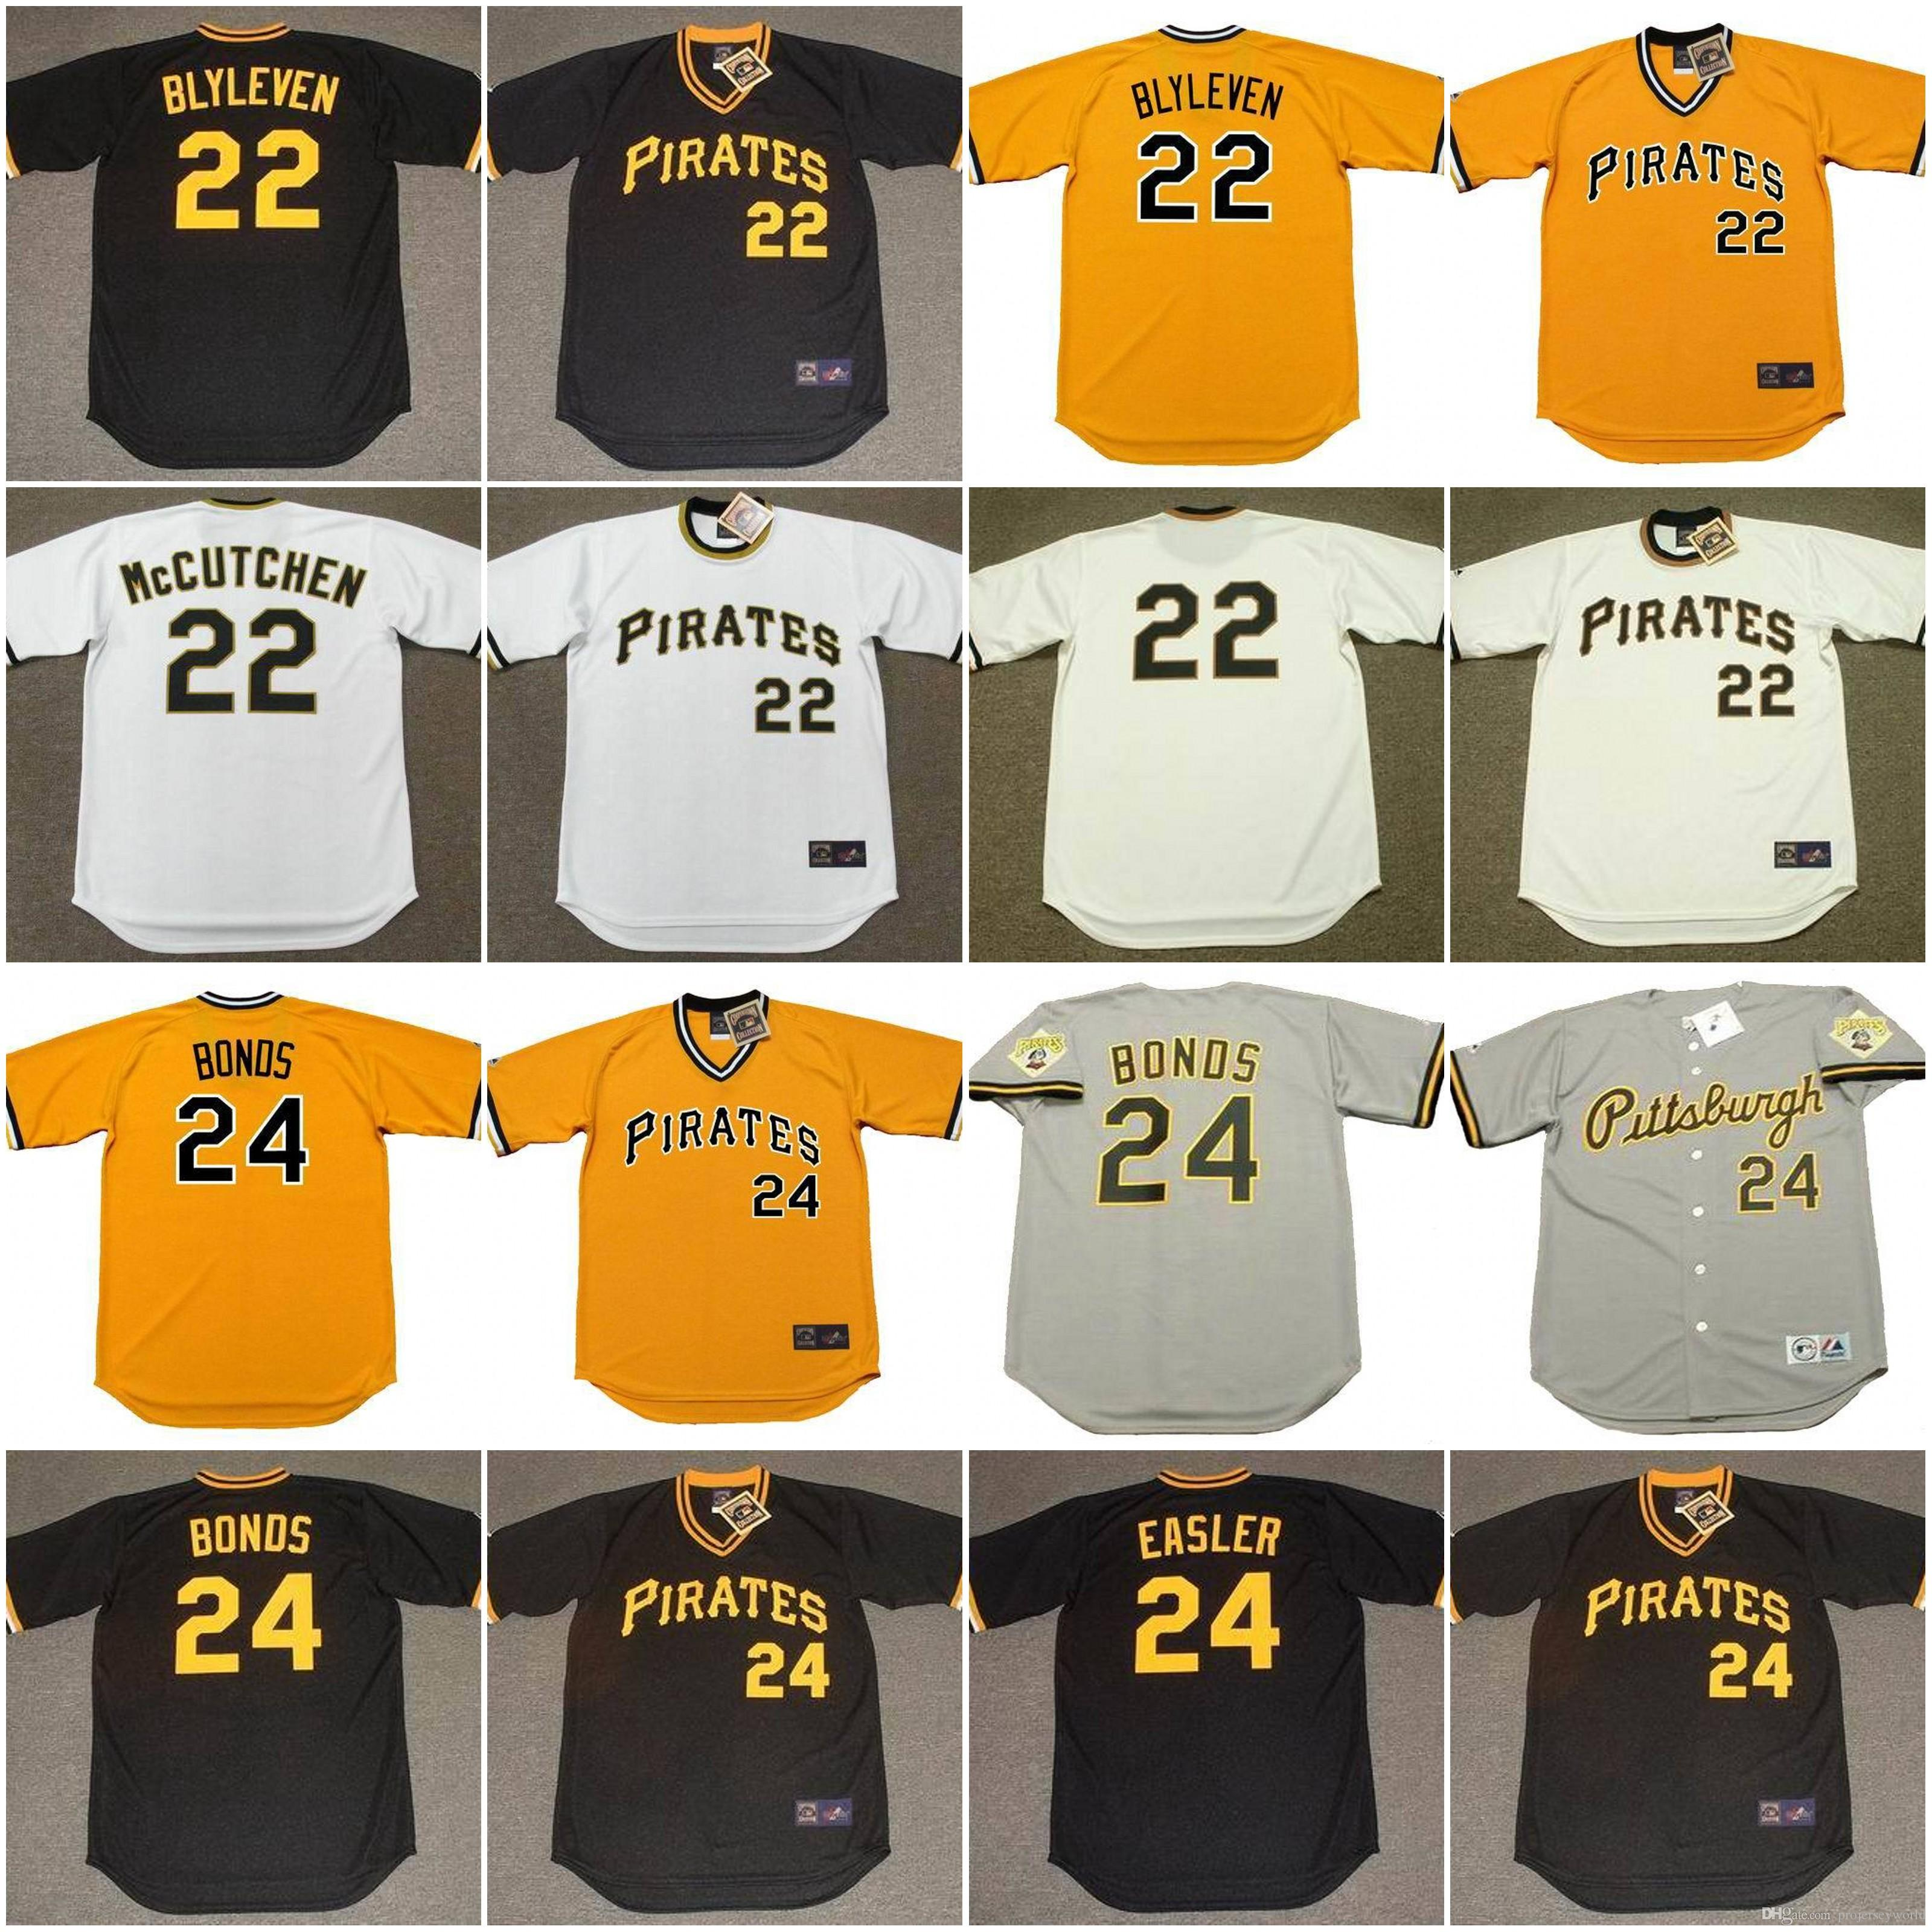 3c4f4e66e ... Throwback Stitched MLB Jersey By Mitchell Ness ... Mens Pittsburgh  Pirates 22 ANDREW McCUTCHEN 1970s 22 BERT BLYLEVEN 24 BARRY BONDS ...